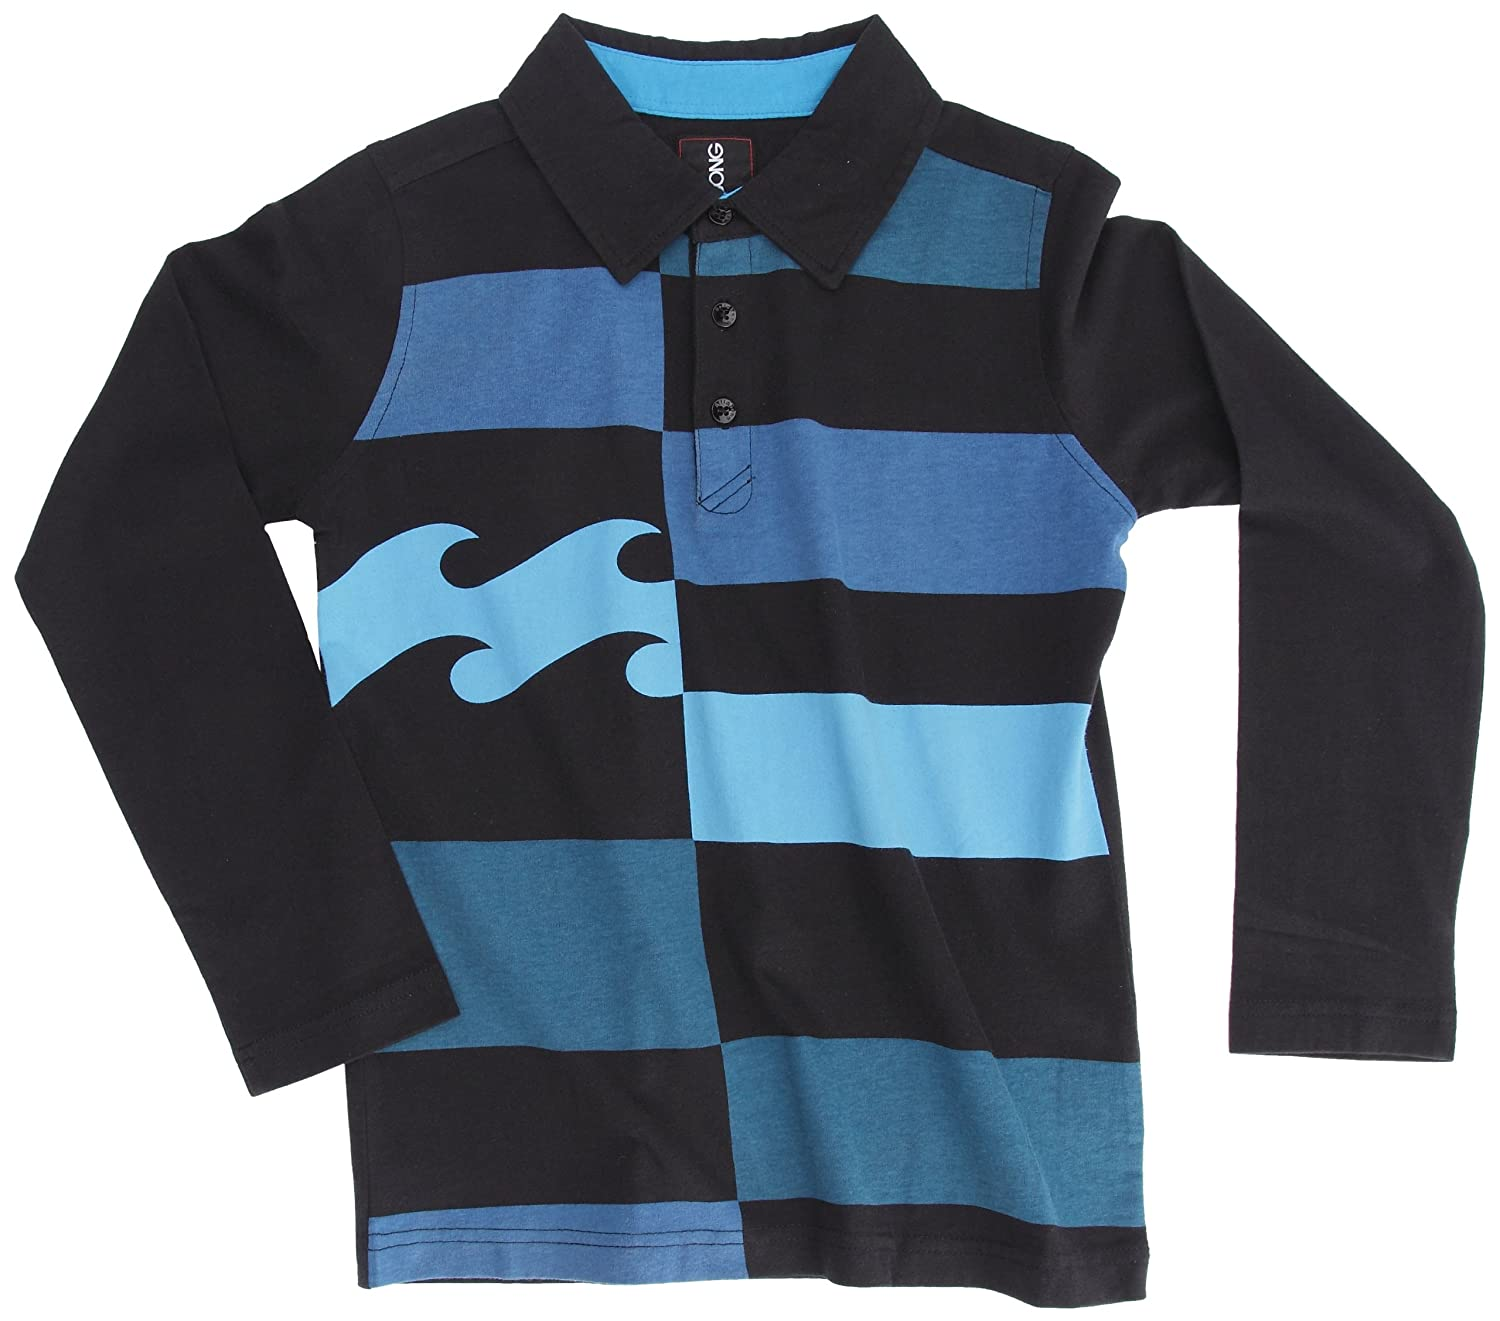 BILLABONG Checky-Polo para niño Negro Negro Talla:16 años: Amazon ...